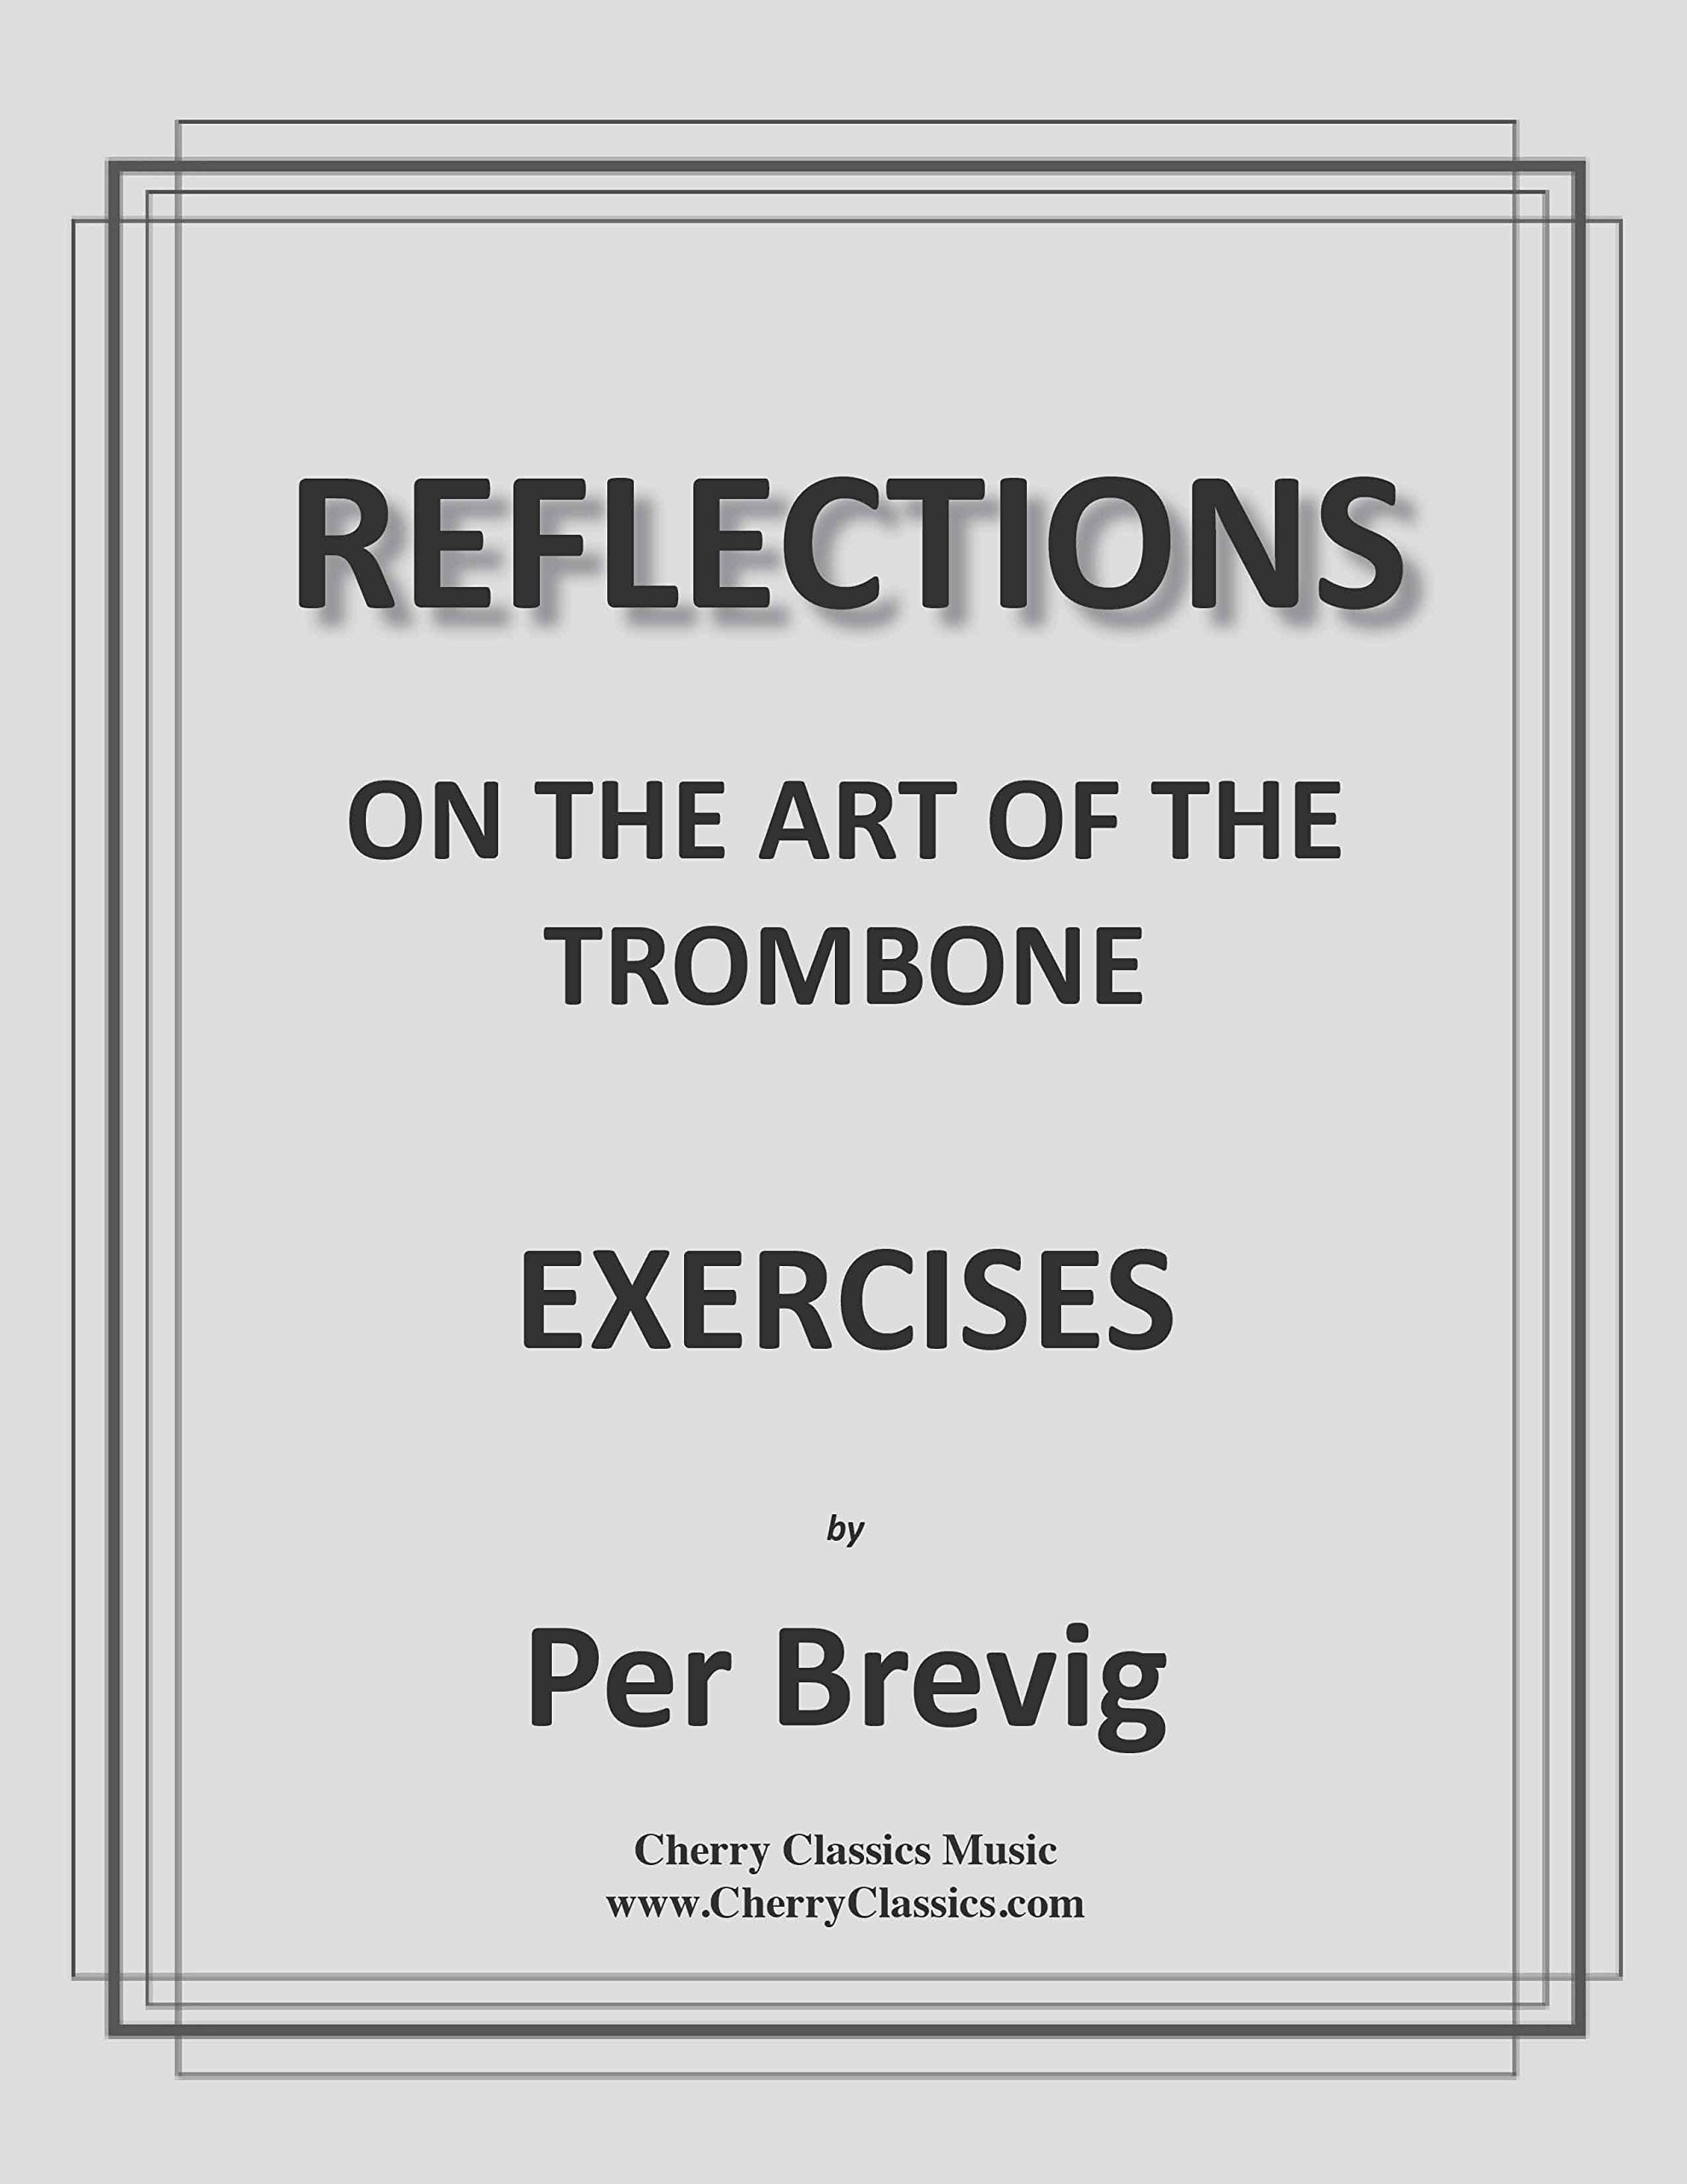 Exercises from - Reflections On The Art of The Trombone